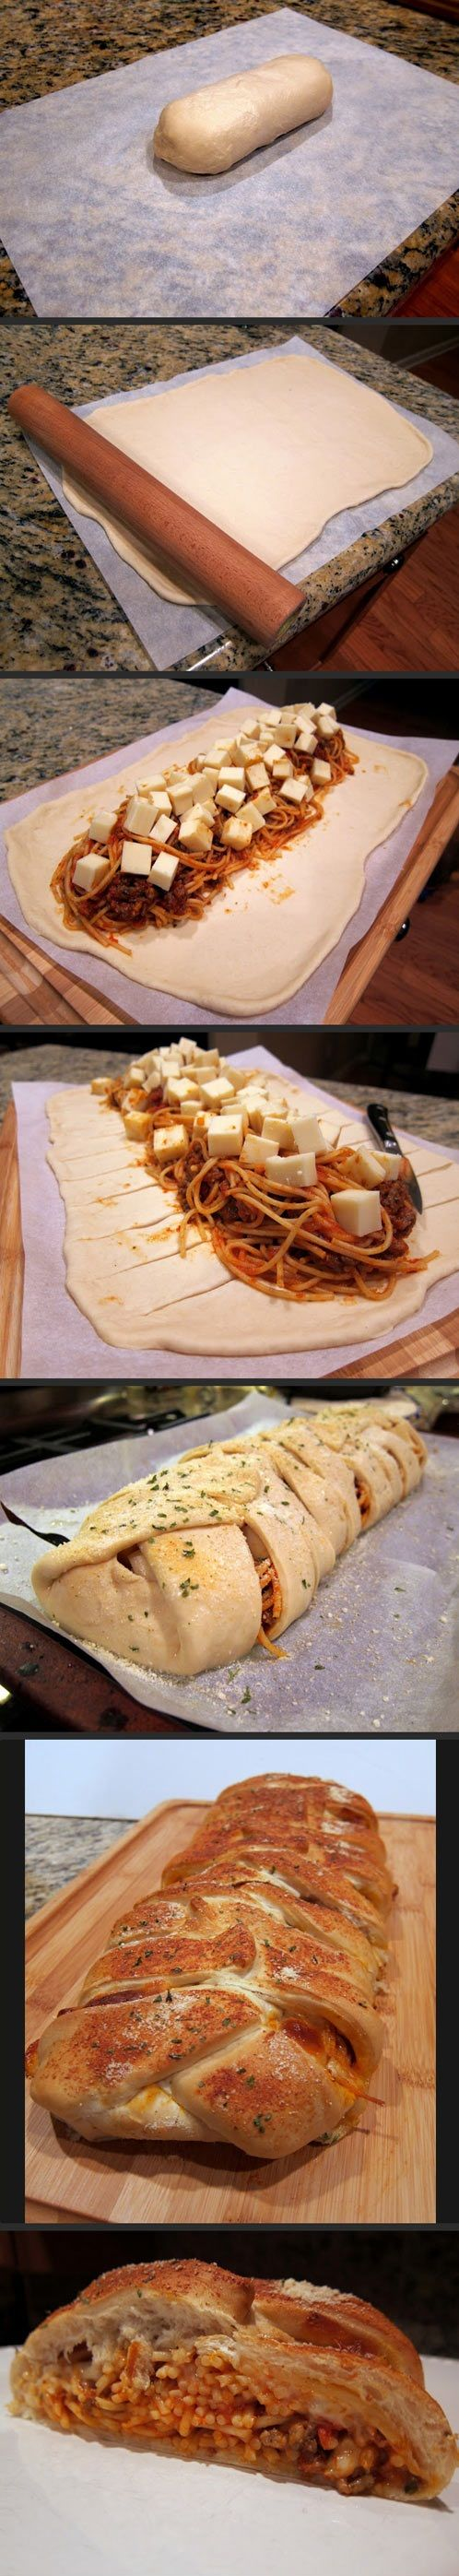 The solution for those who are too lazy to dip bread in spaghetti